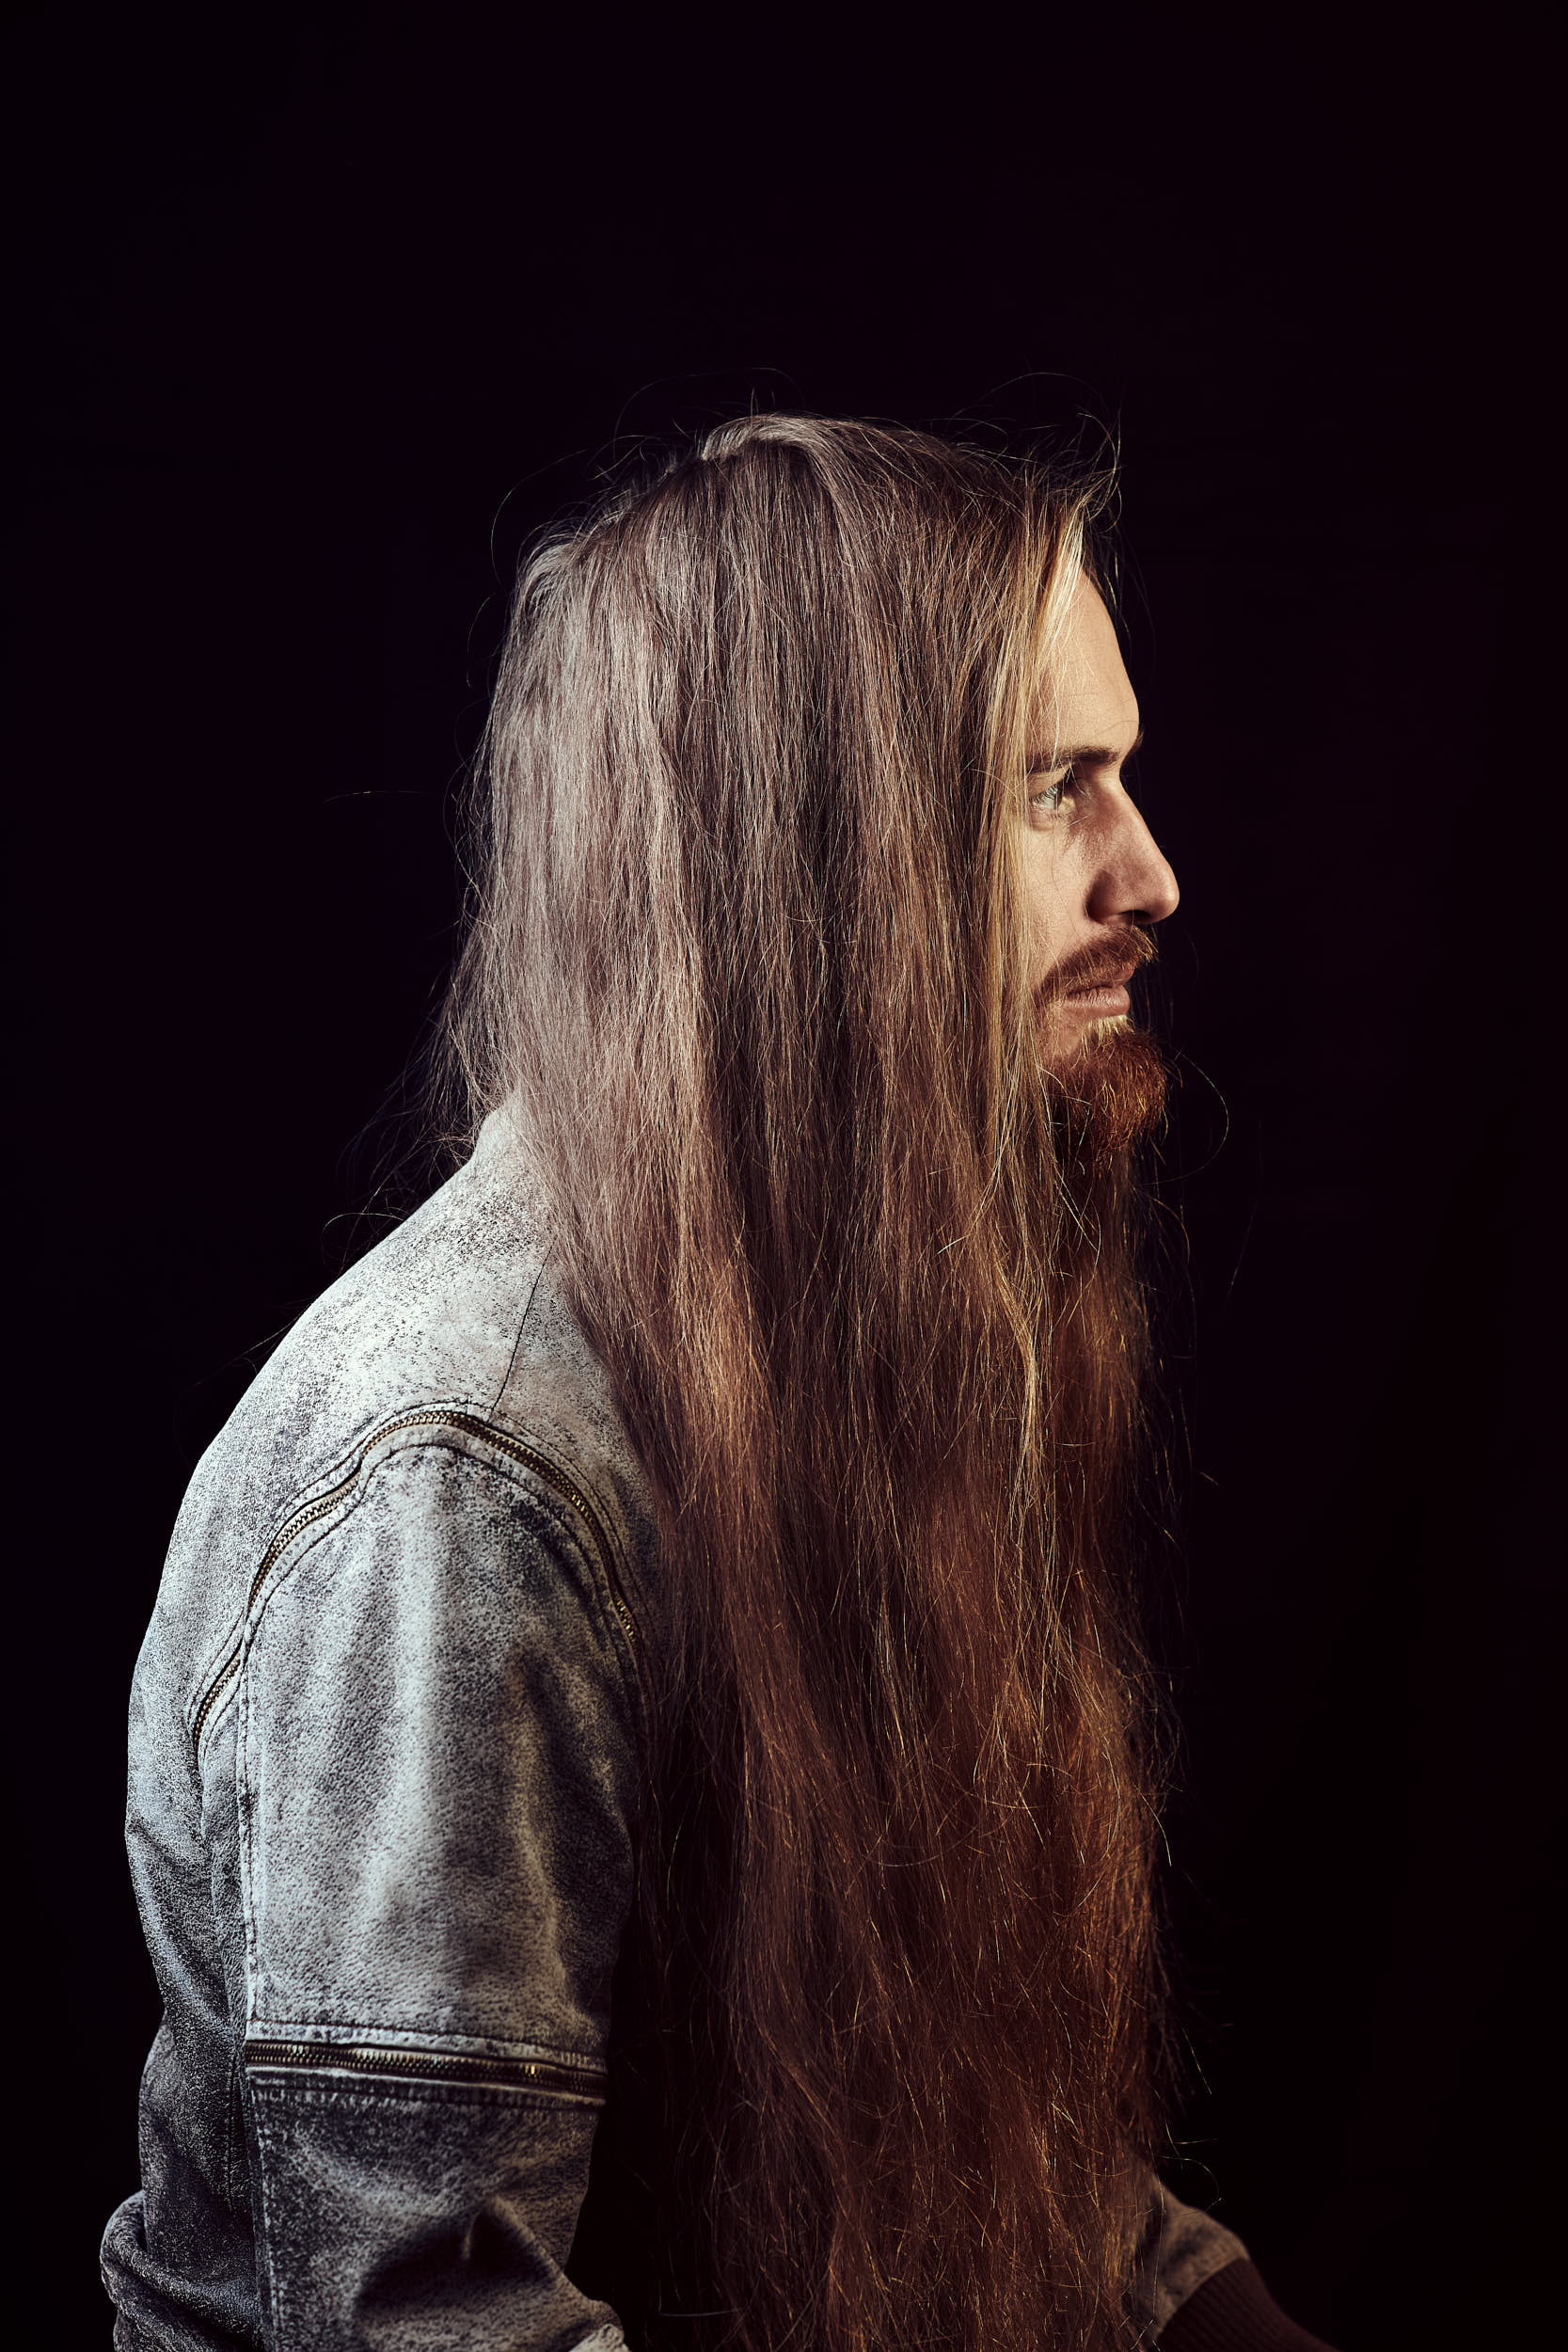 Classic portrait photography: Man with long hair in a studio setting.